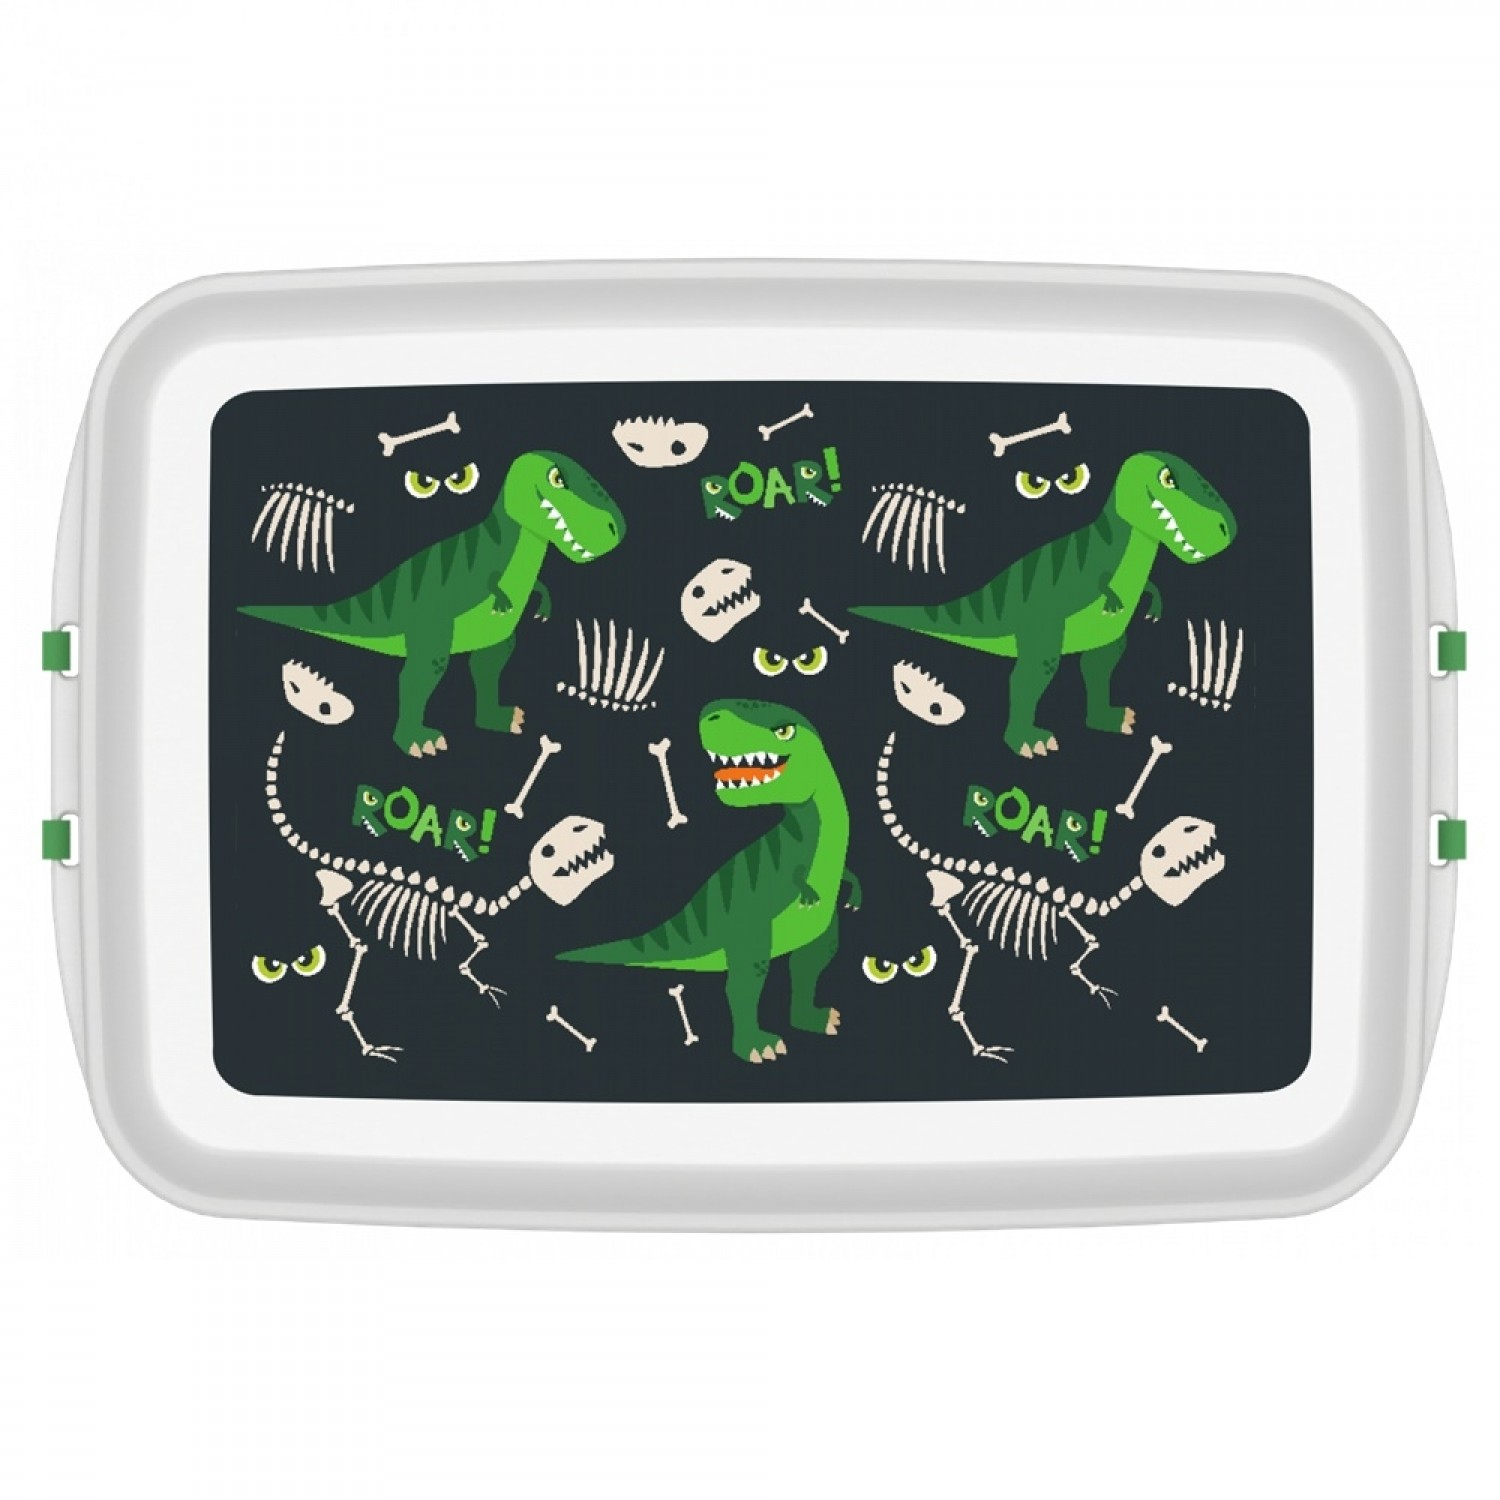 DINO Lunchbox made of Bioplastics | Biodora